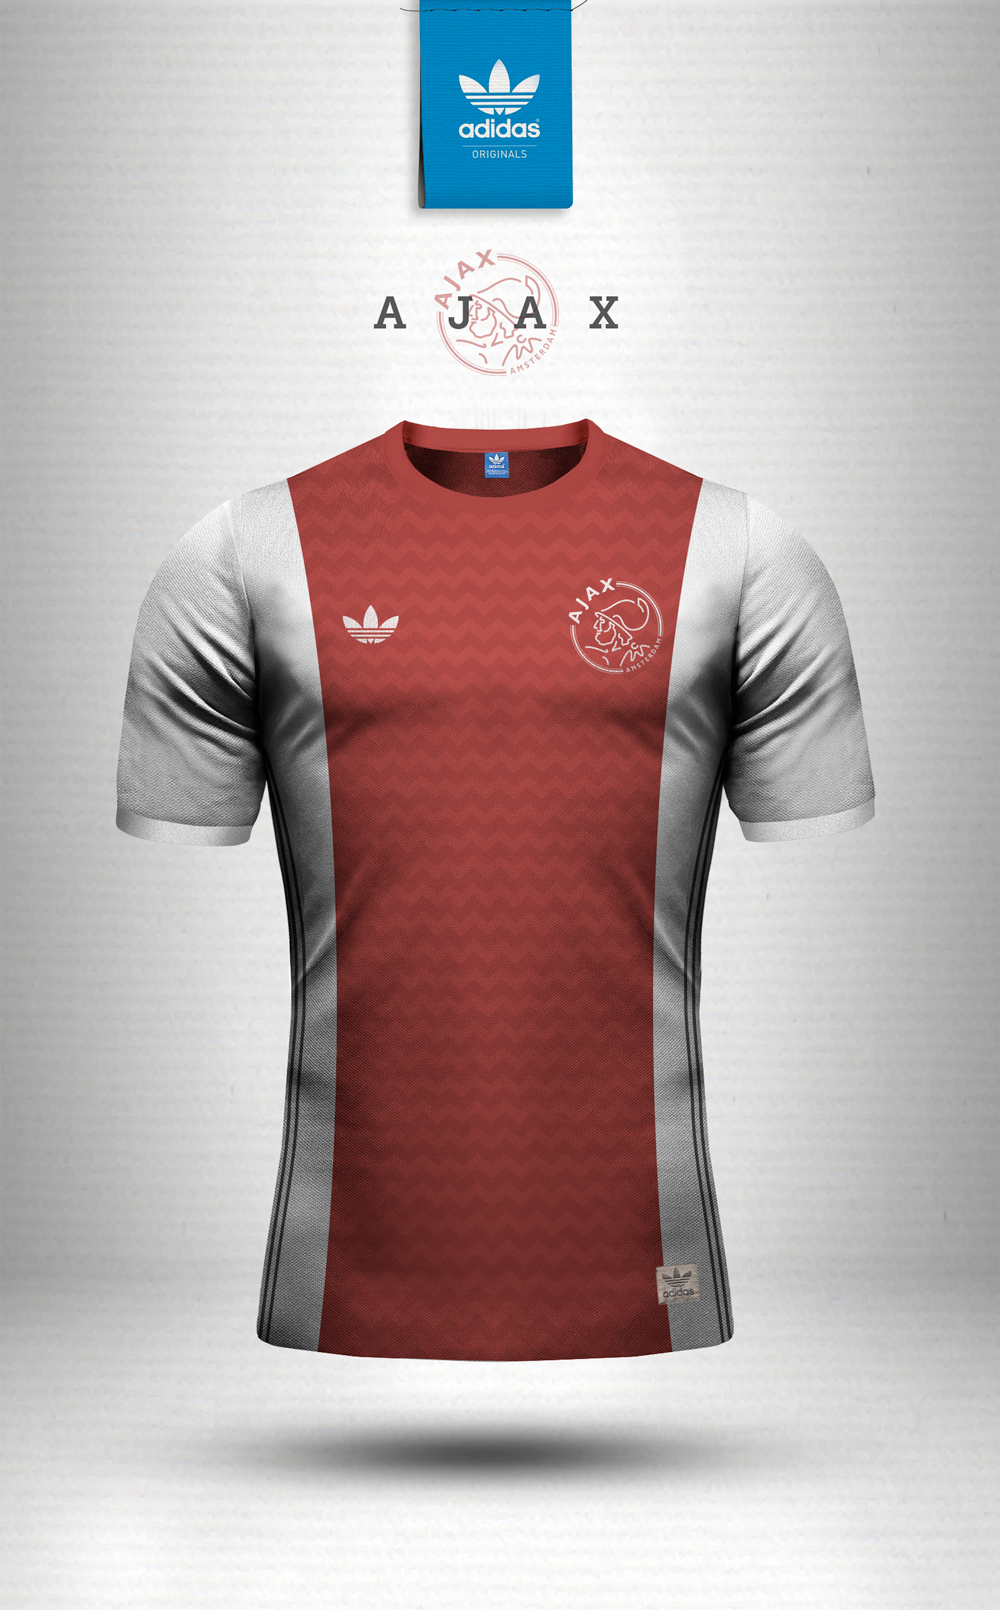 8981c7c25a8 Adidas Originals and Nike Sportswear jersey design concepts using geometric  patterns.